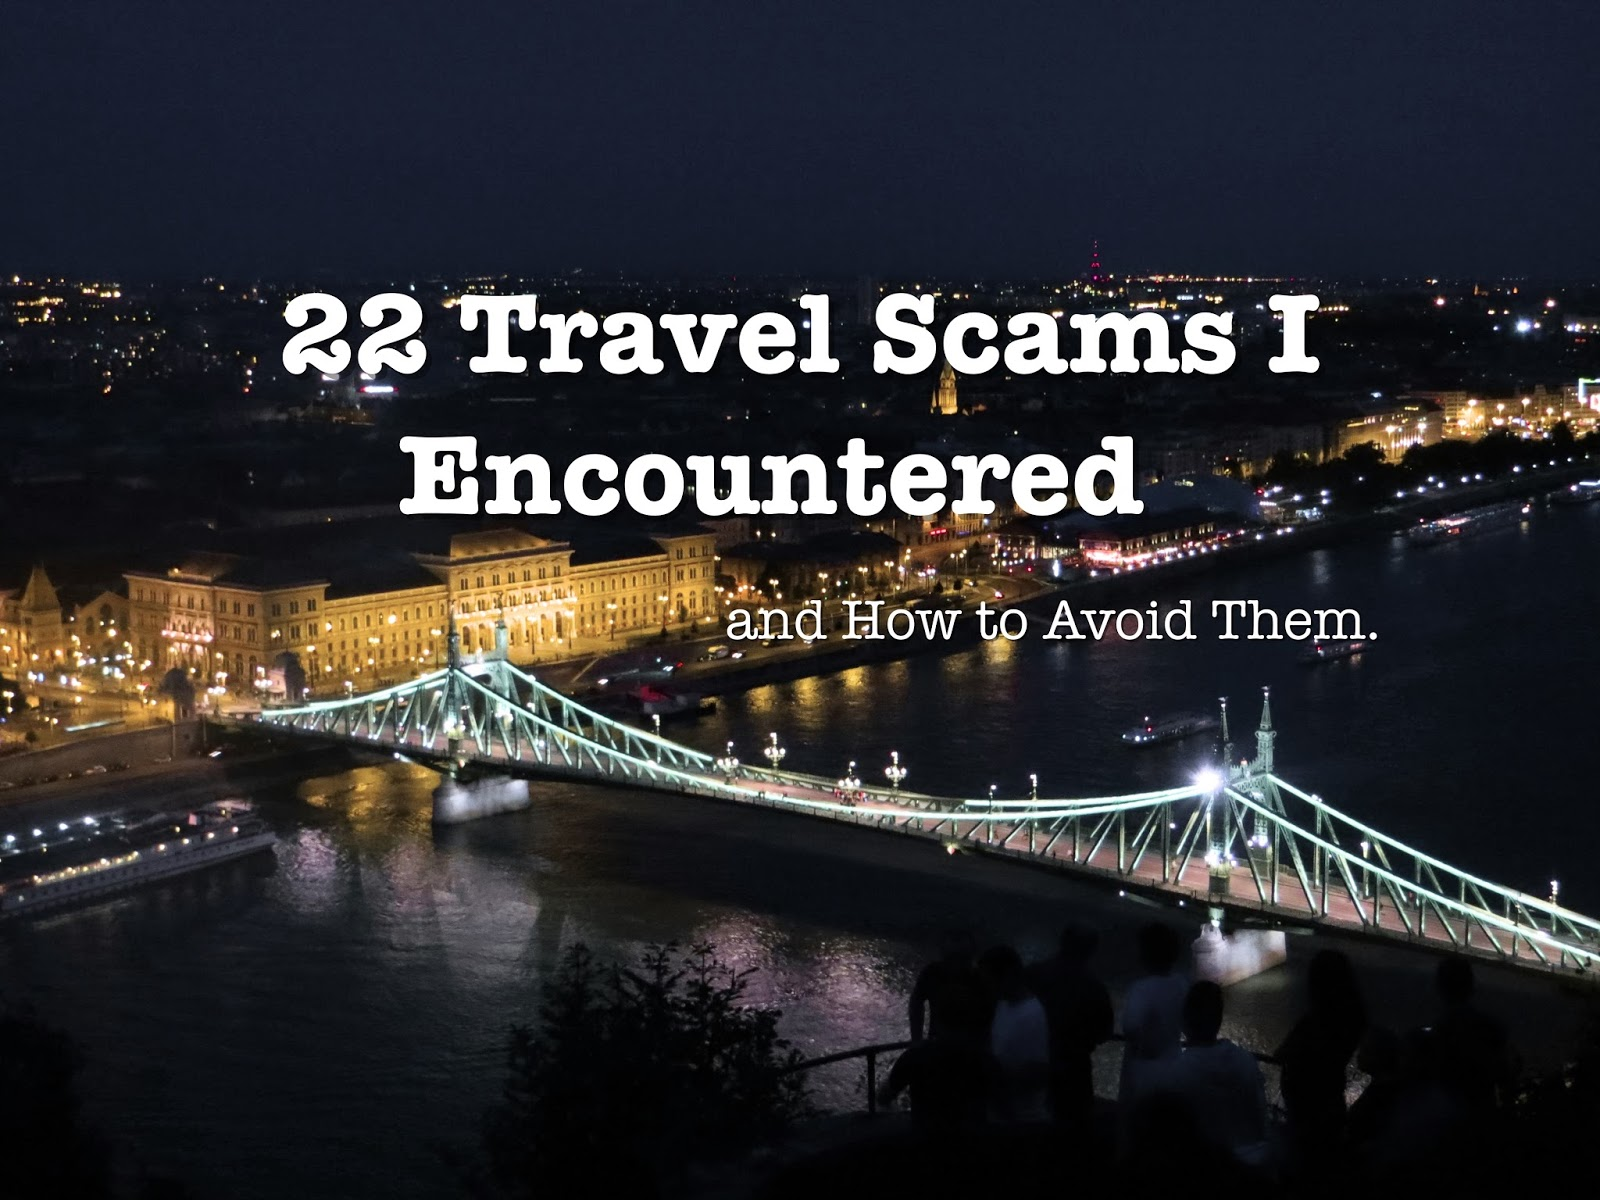 Miss HappyFeet Travel Scams I Encountered During My Travels - 7 tips to avoid tourist scams in europe